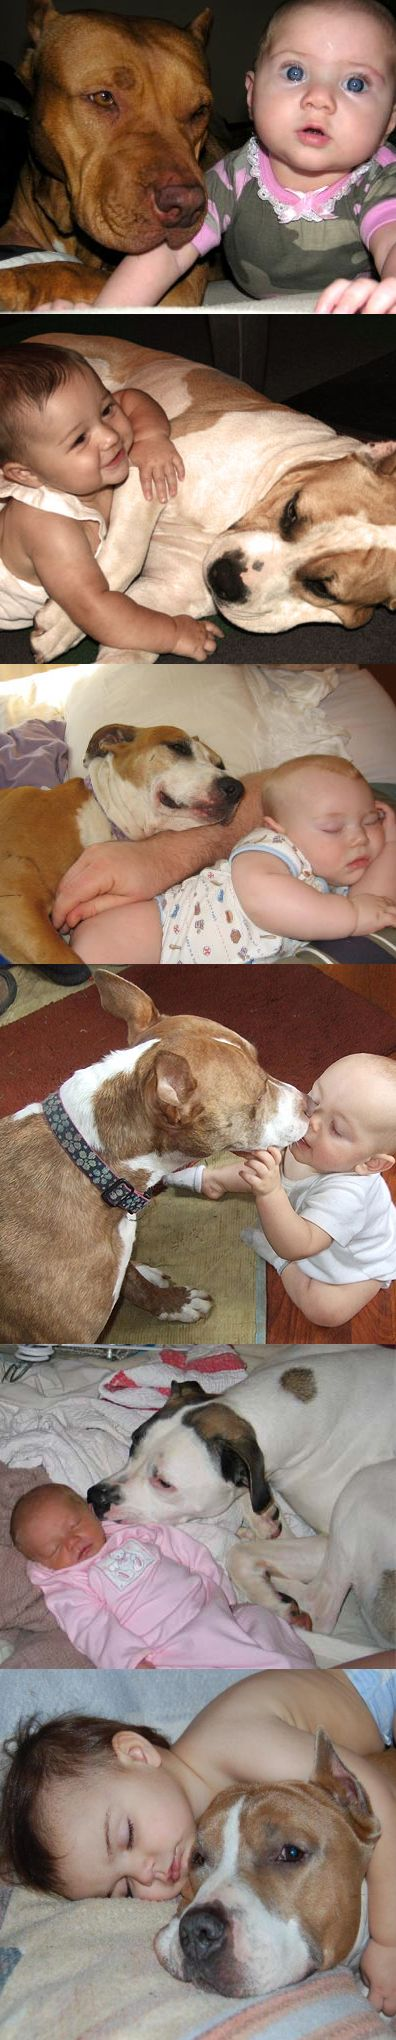 Pit bulls are clearly vicious creatures.      A loyal protector and friend.